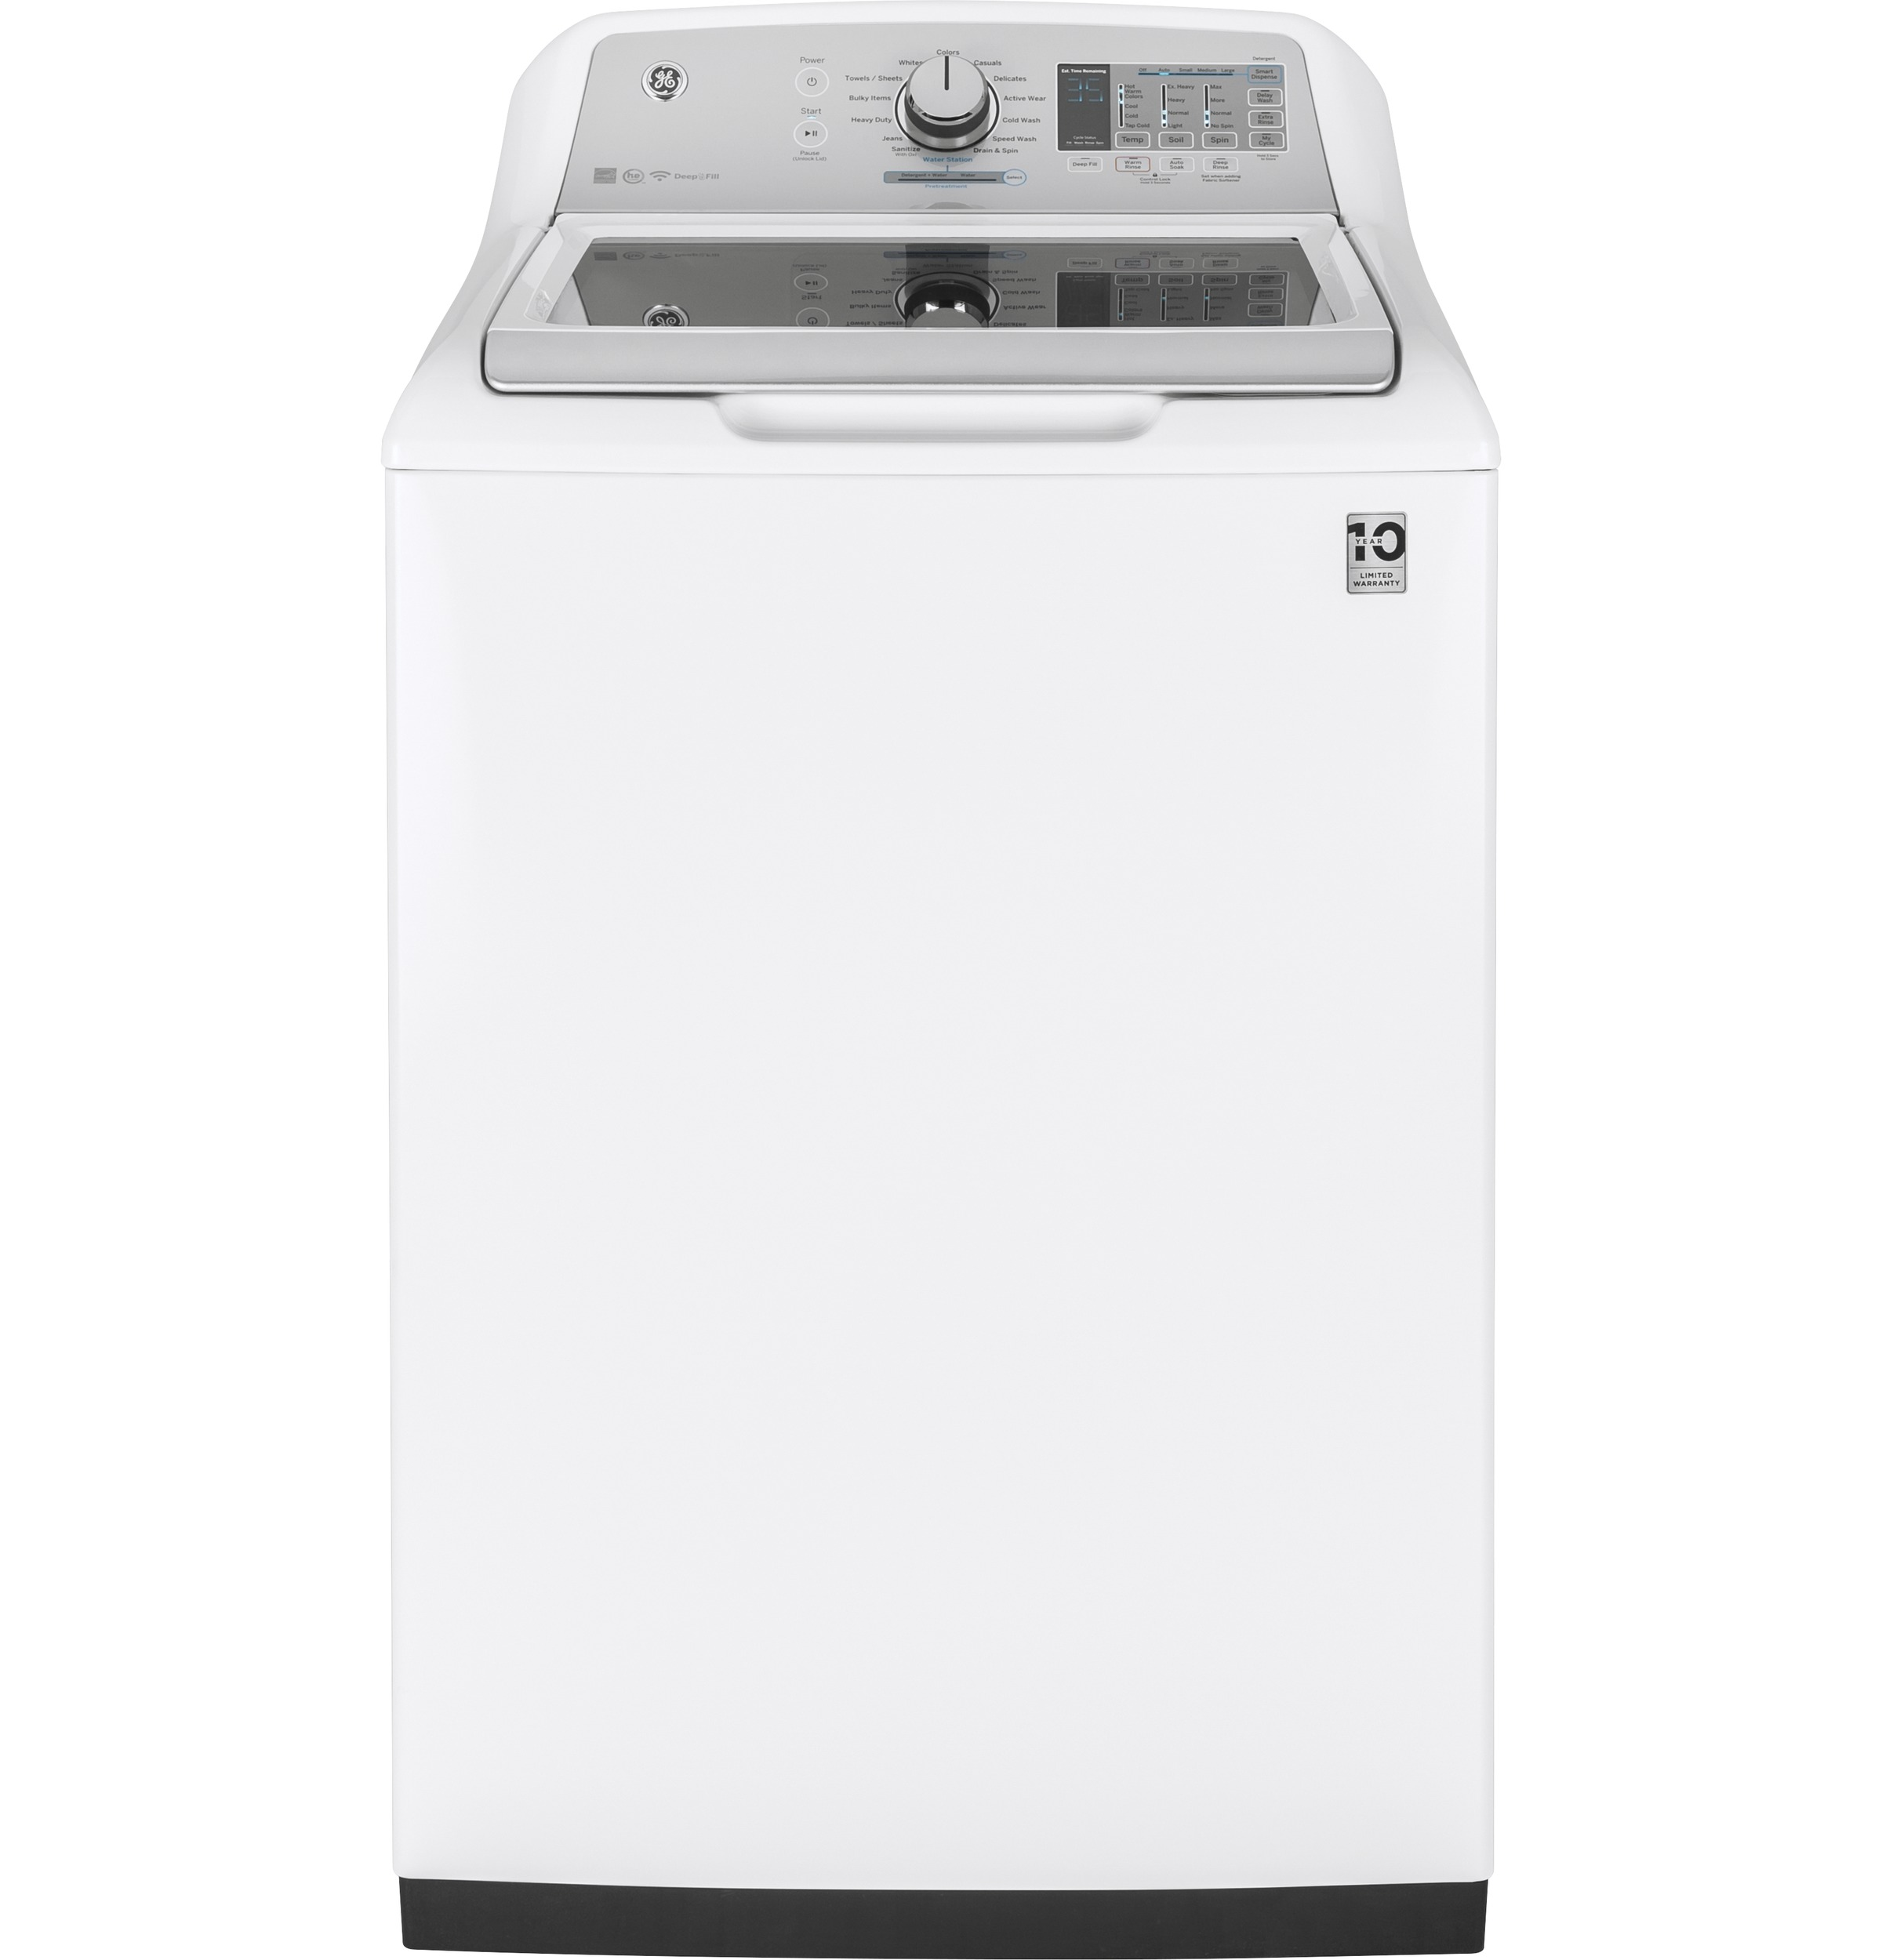 Ge 174 5 0 Cu Ft Capacity Washer With Stainless Steel